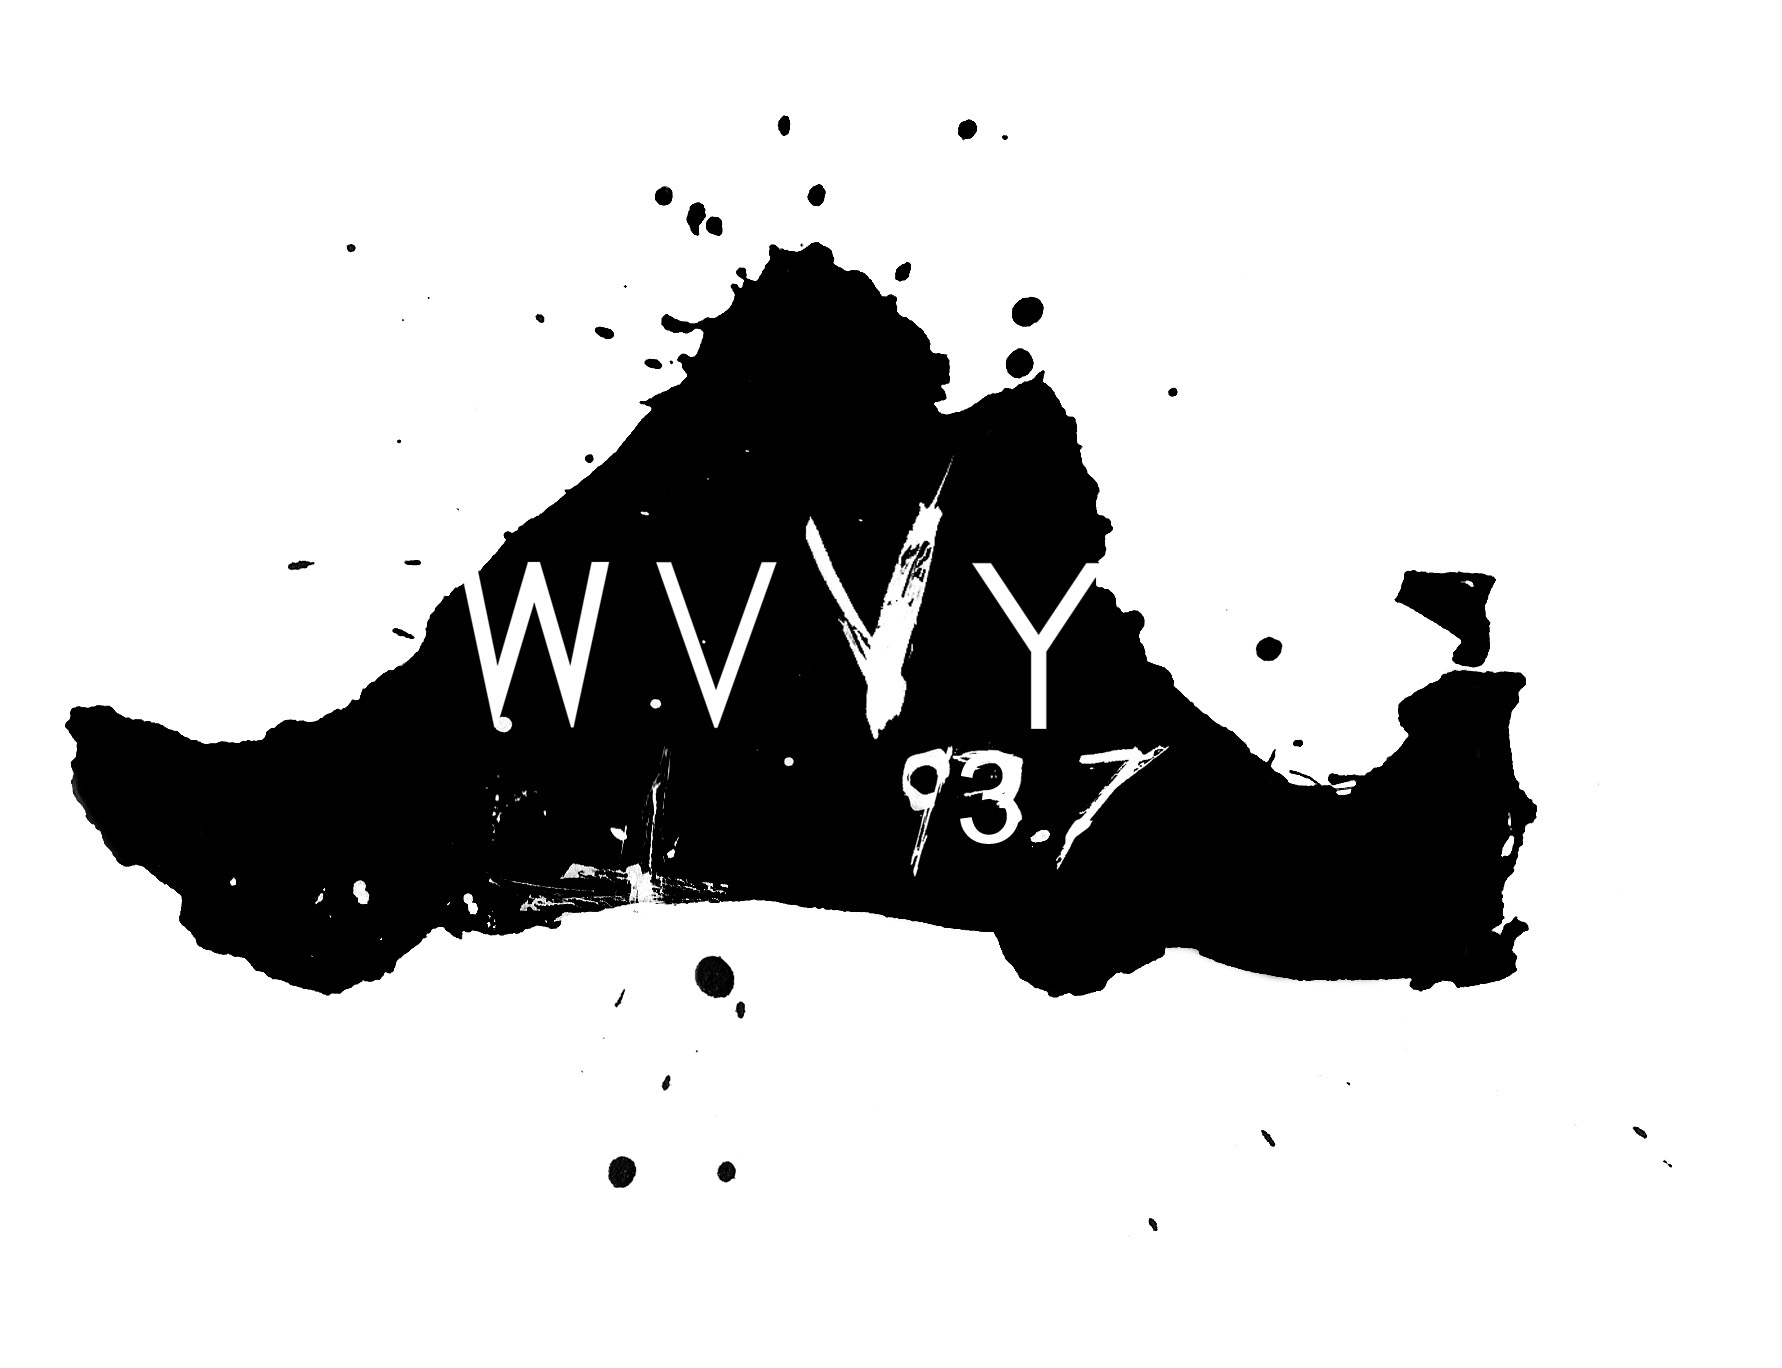 WVVY Radio Station Logo